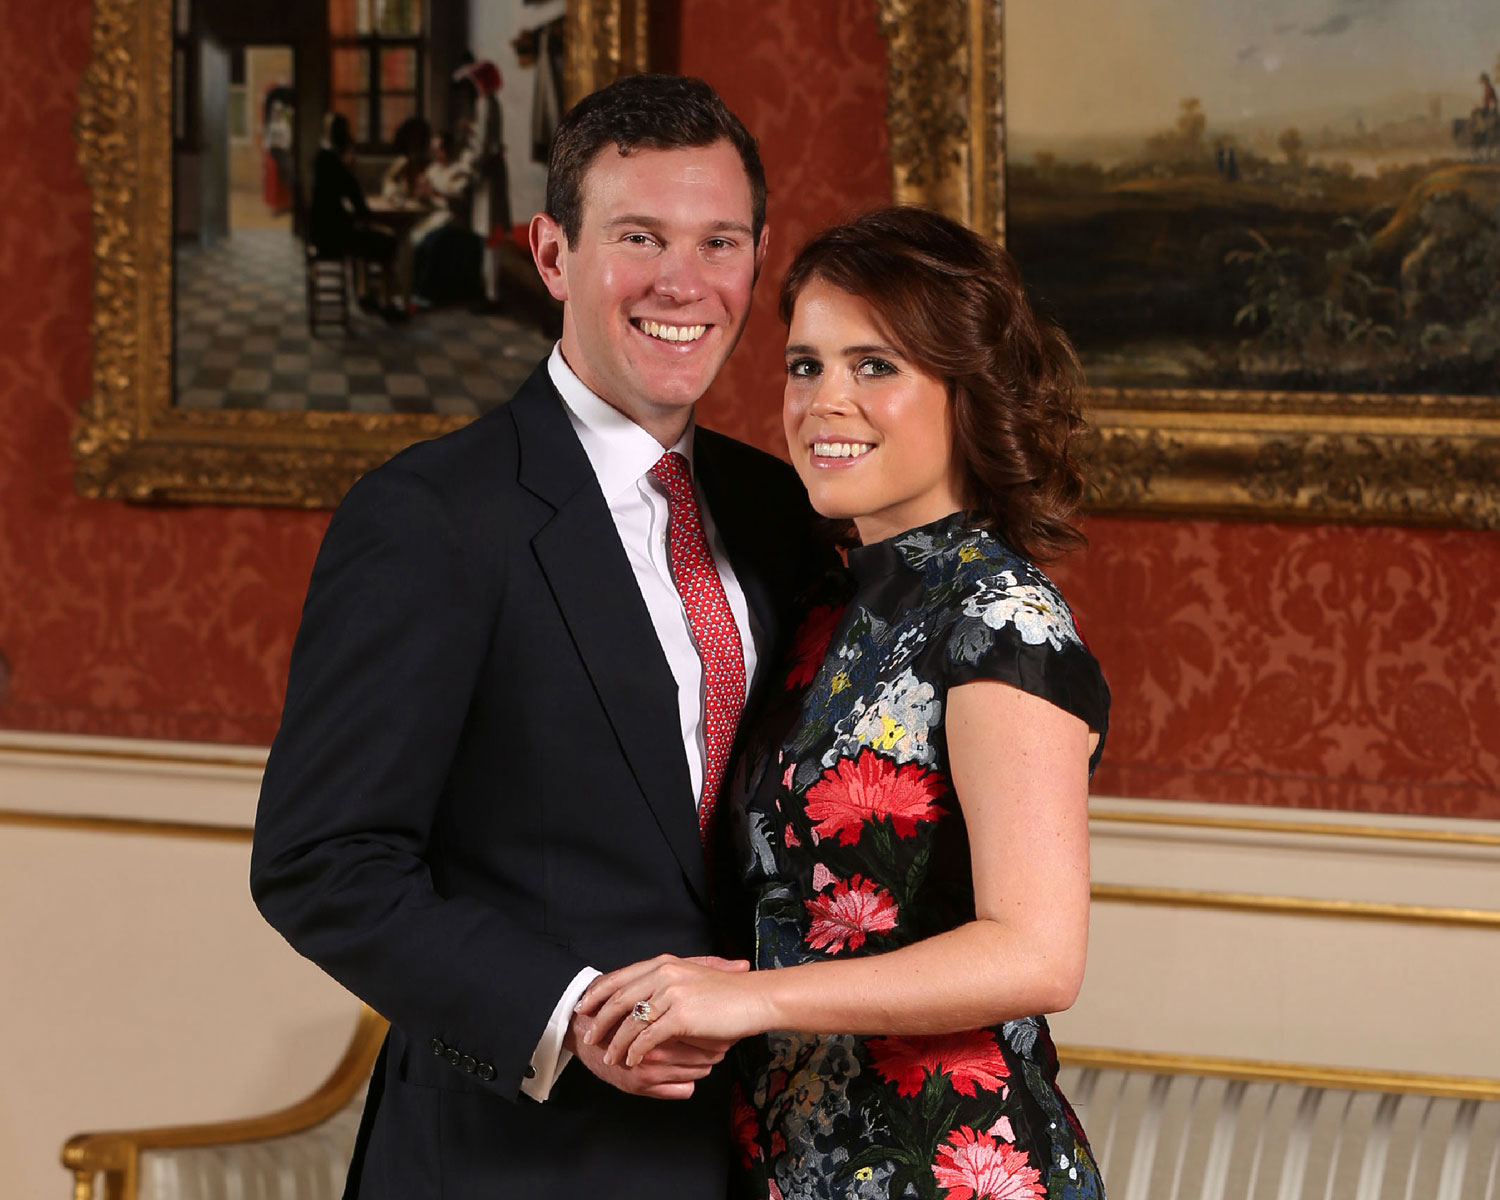 Padparadscha Sapphire Engagement Ring Princess Eugenie Engaged To Jack Brooksbank See The